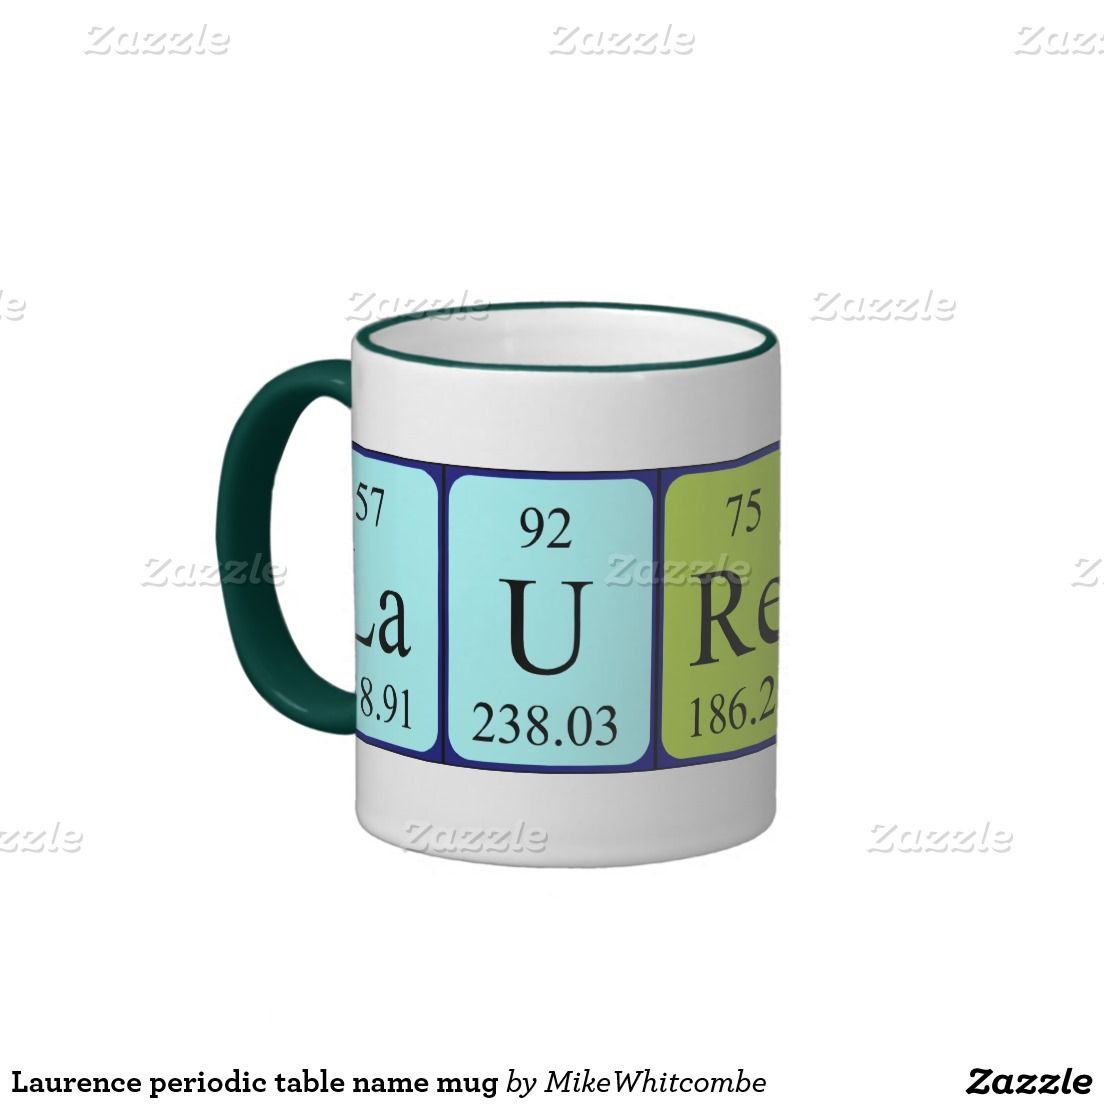 Laurence periodic table name mug tables table names and periodic laurence periodic table name mug urtaz Image collections